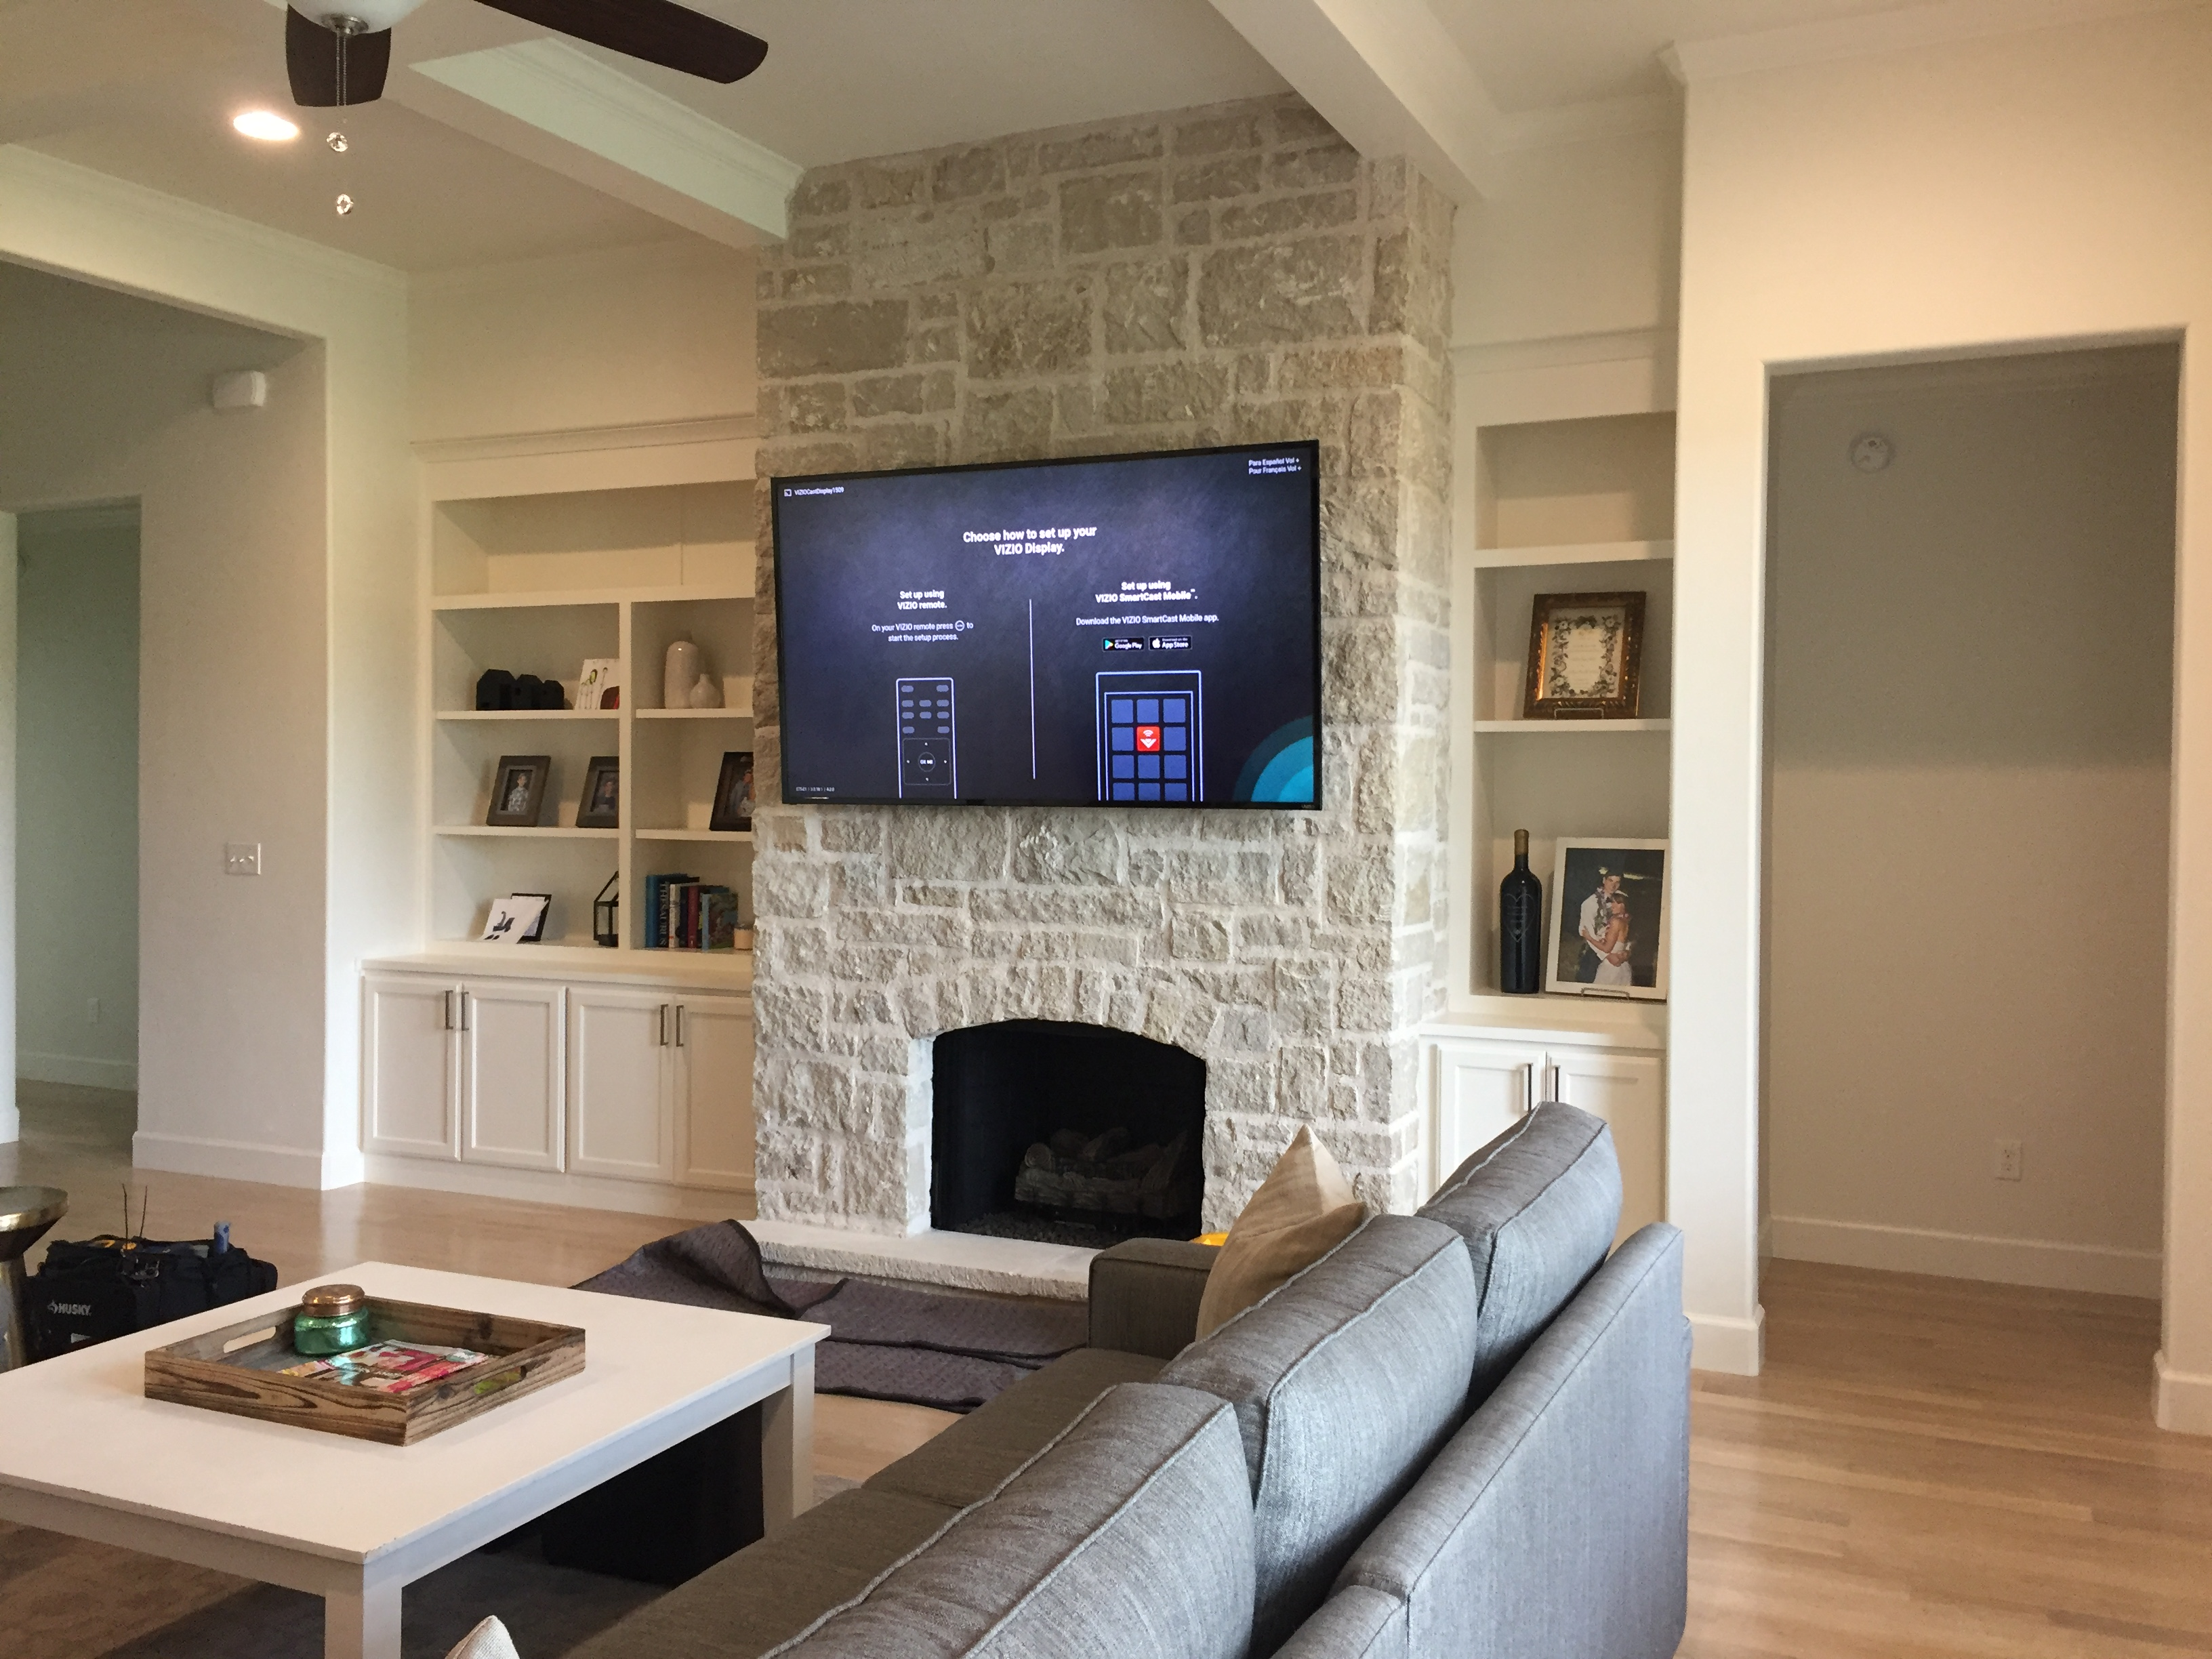 Custom Sound Installation Tulsas Home Theater Design Tv Wiring A Room And Rooms For Residential Commercial Areas Prevnext